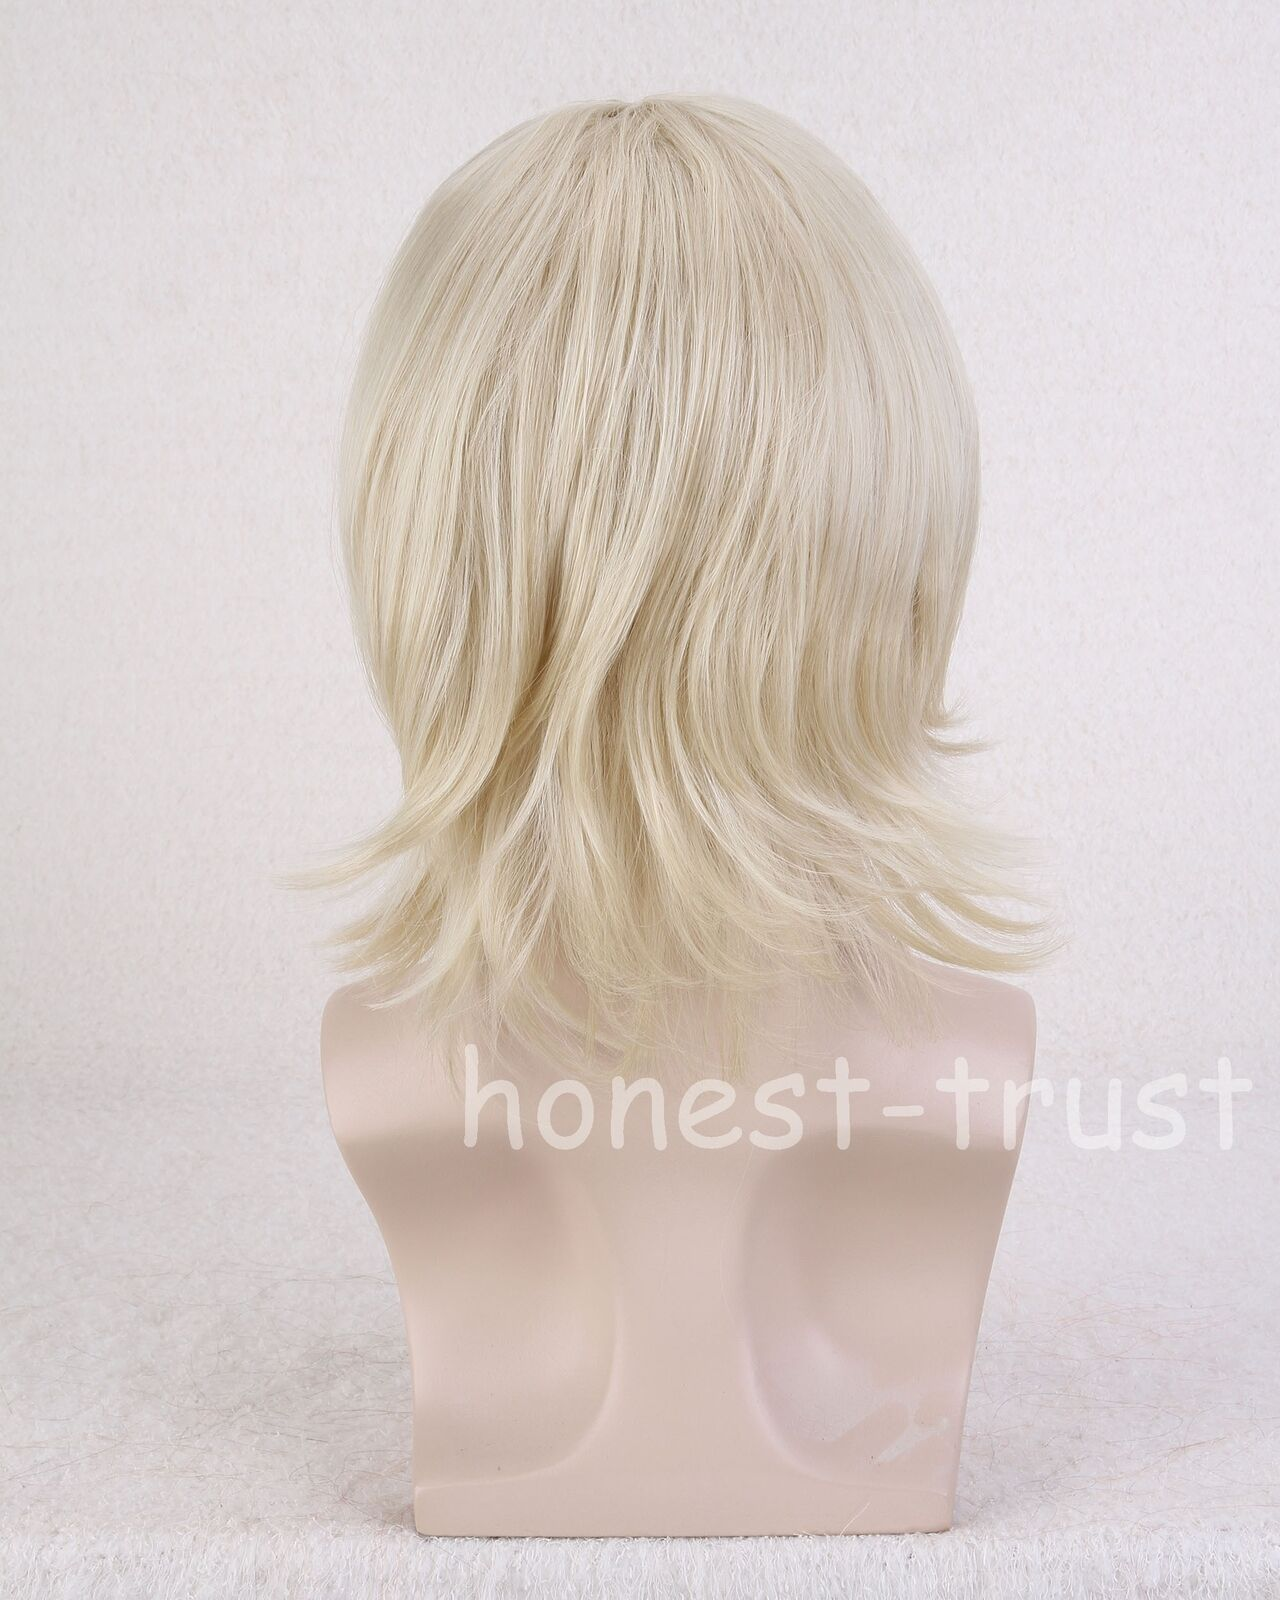 Short Wigs Men's Straight Hair Cut With Bangs Fashion Anime Party Cosplay Blonde 6279580973767 ...